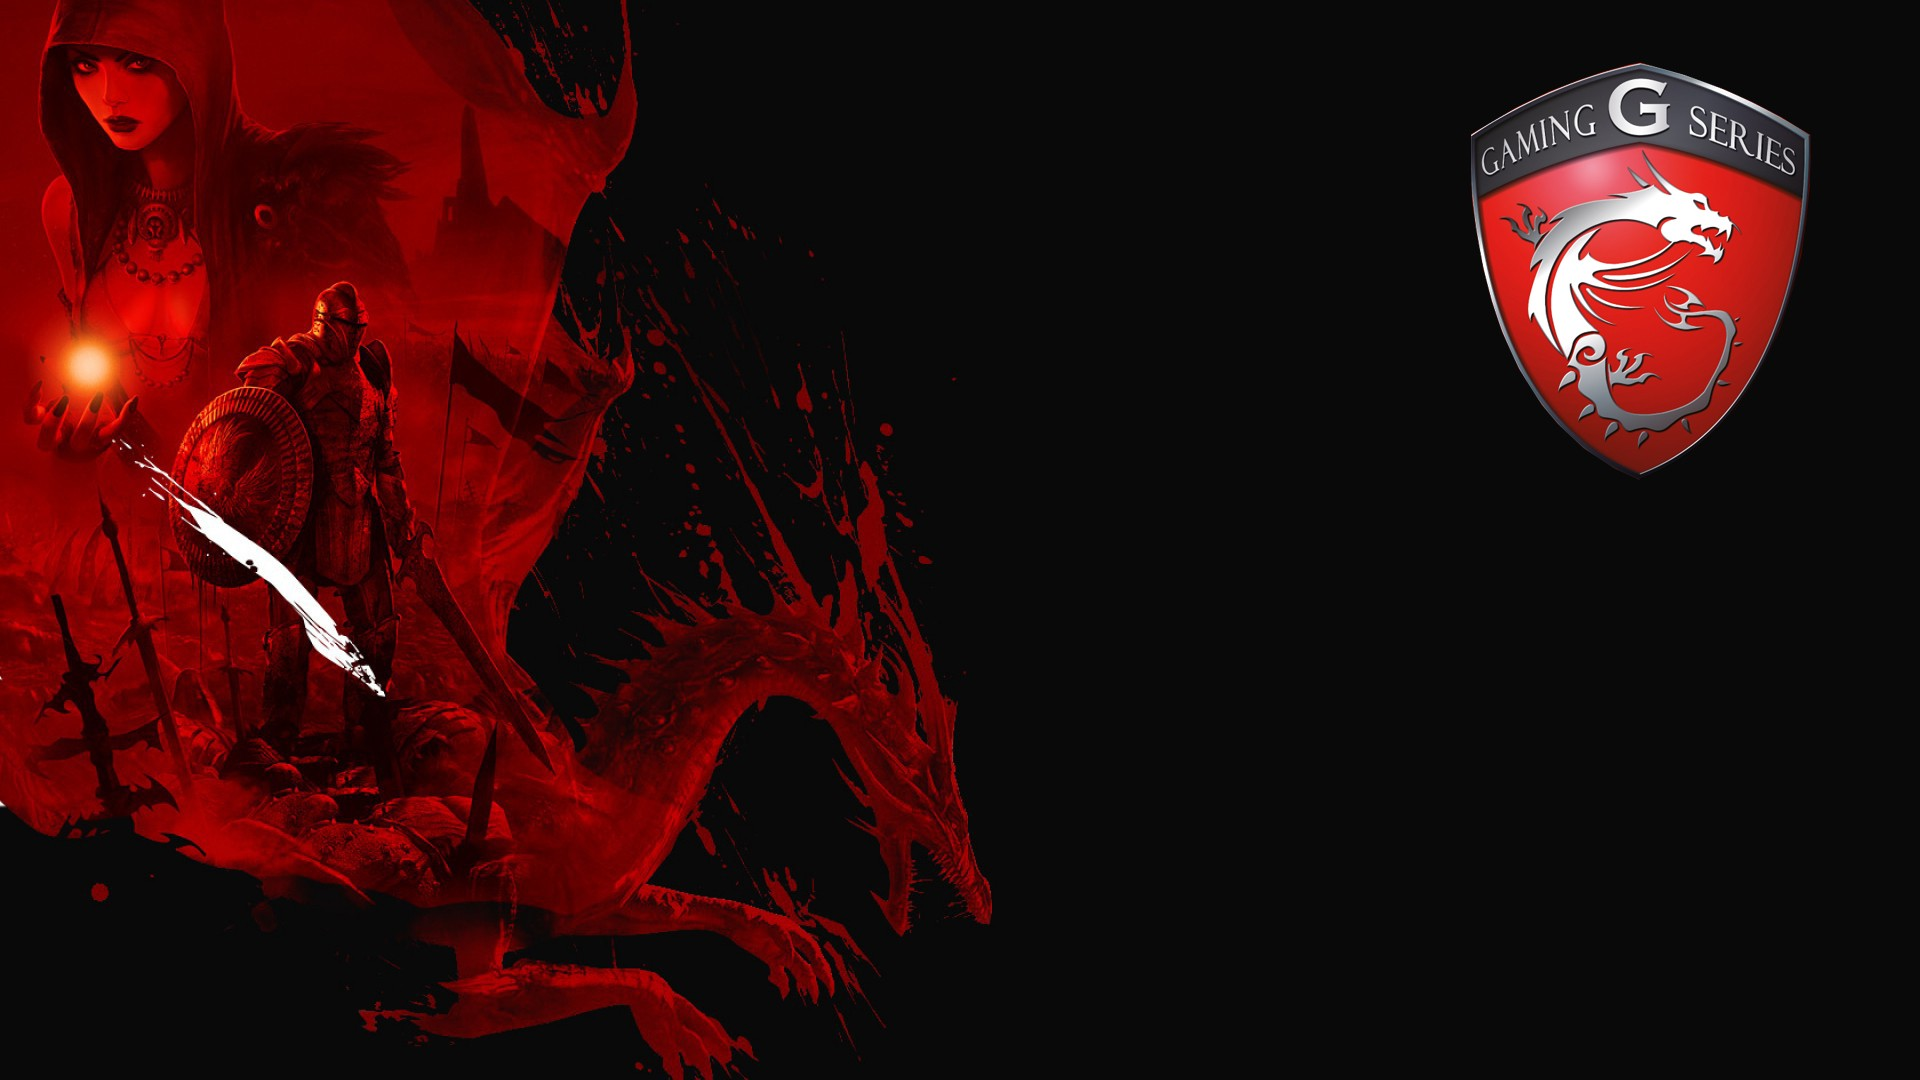 Msi gaming wallpaper 1920x1080 wallpapersafari for Fond ecran gaming